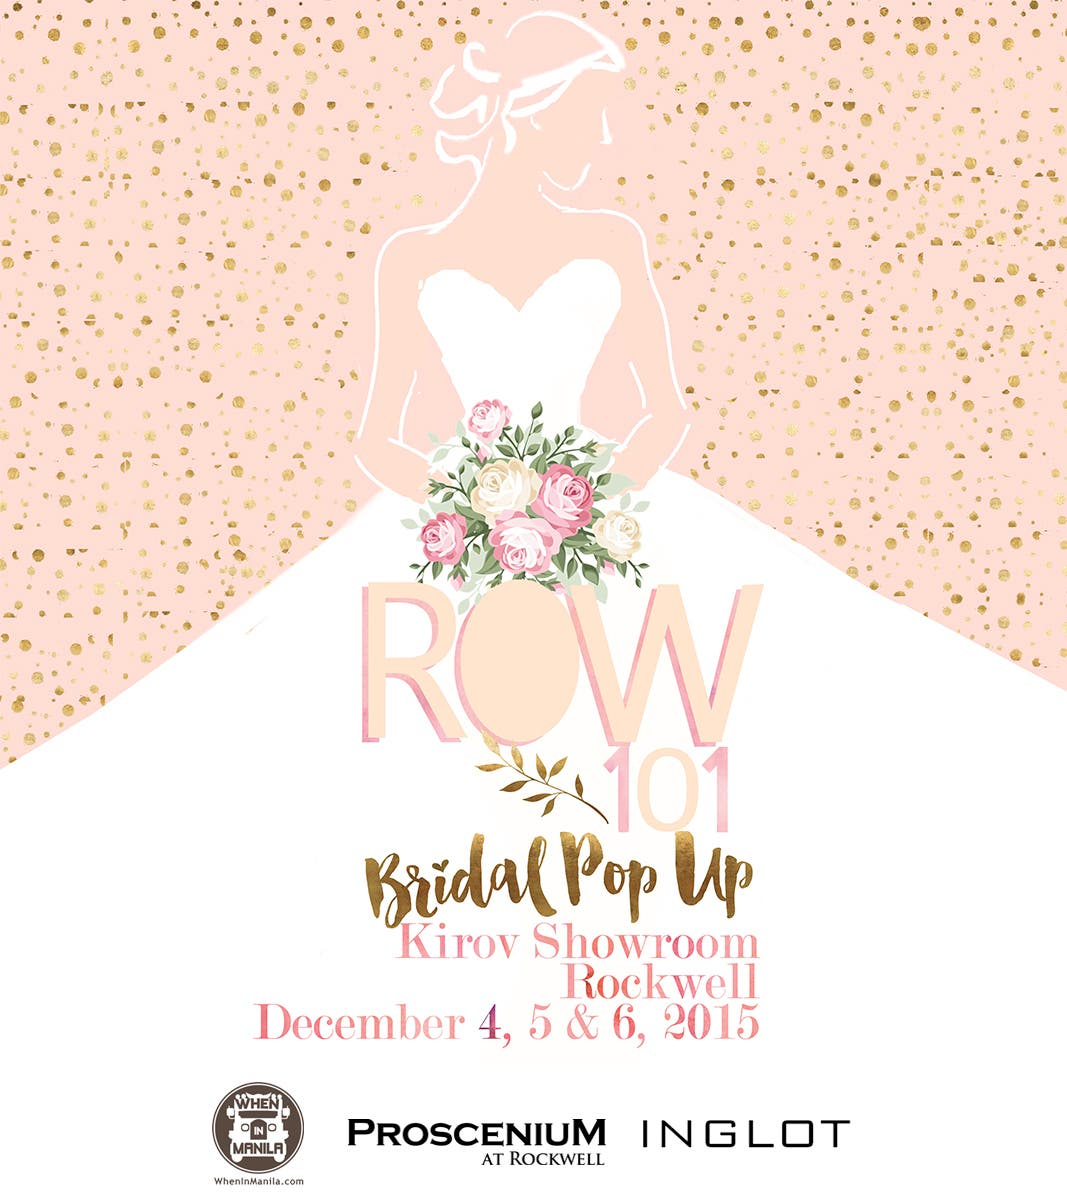 Bridal Pop-Up By Row 101